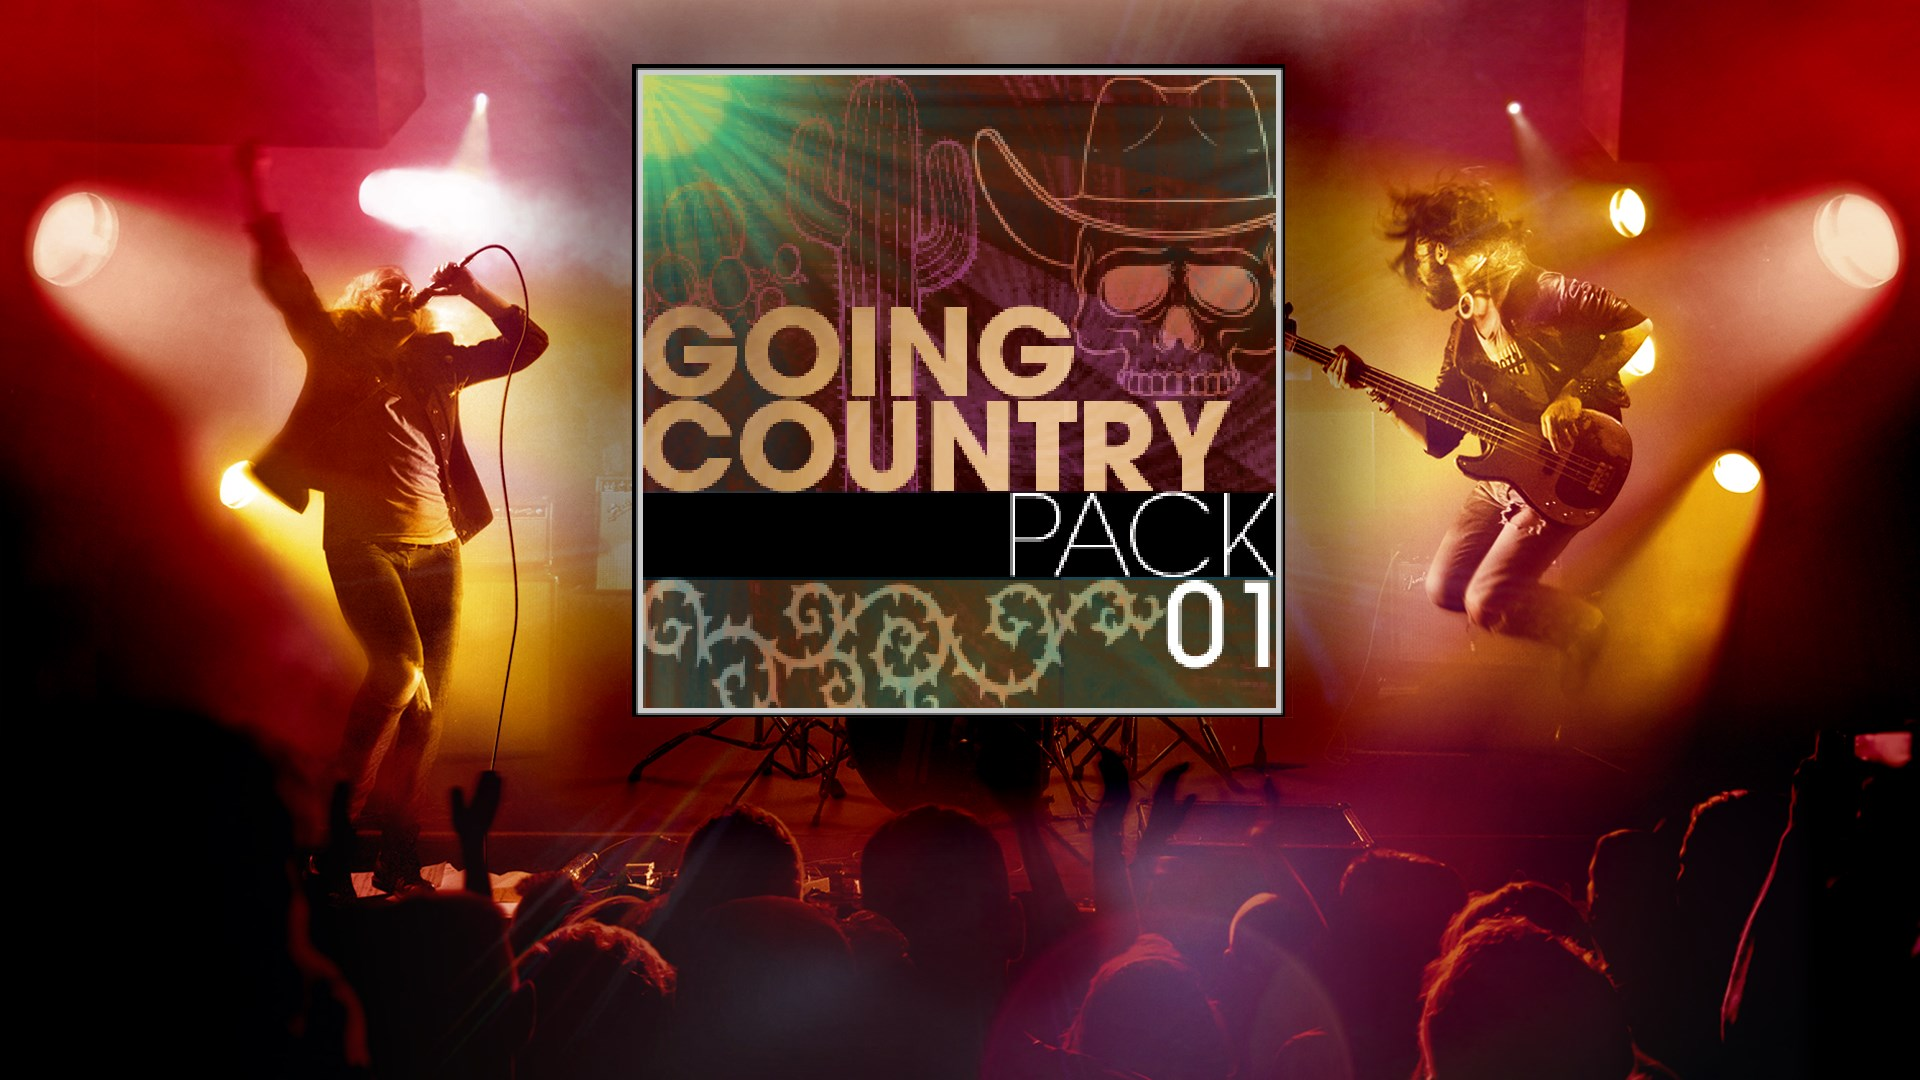 Going Country Pack 01